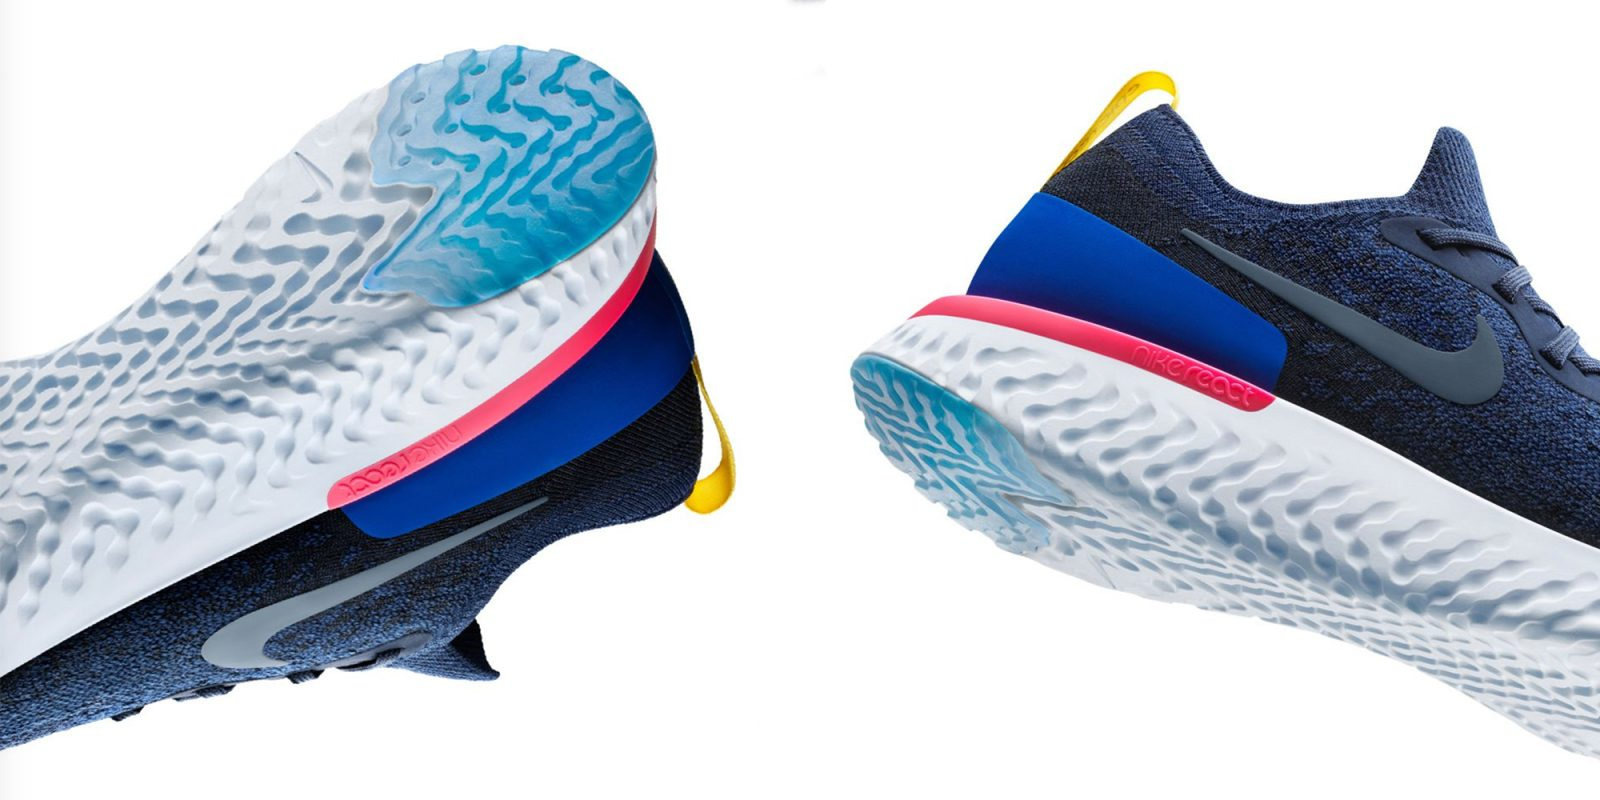 Nike unveils Epic React Flyknit running shoes with 'incredibly soft' soles, order now